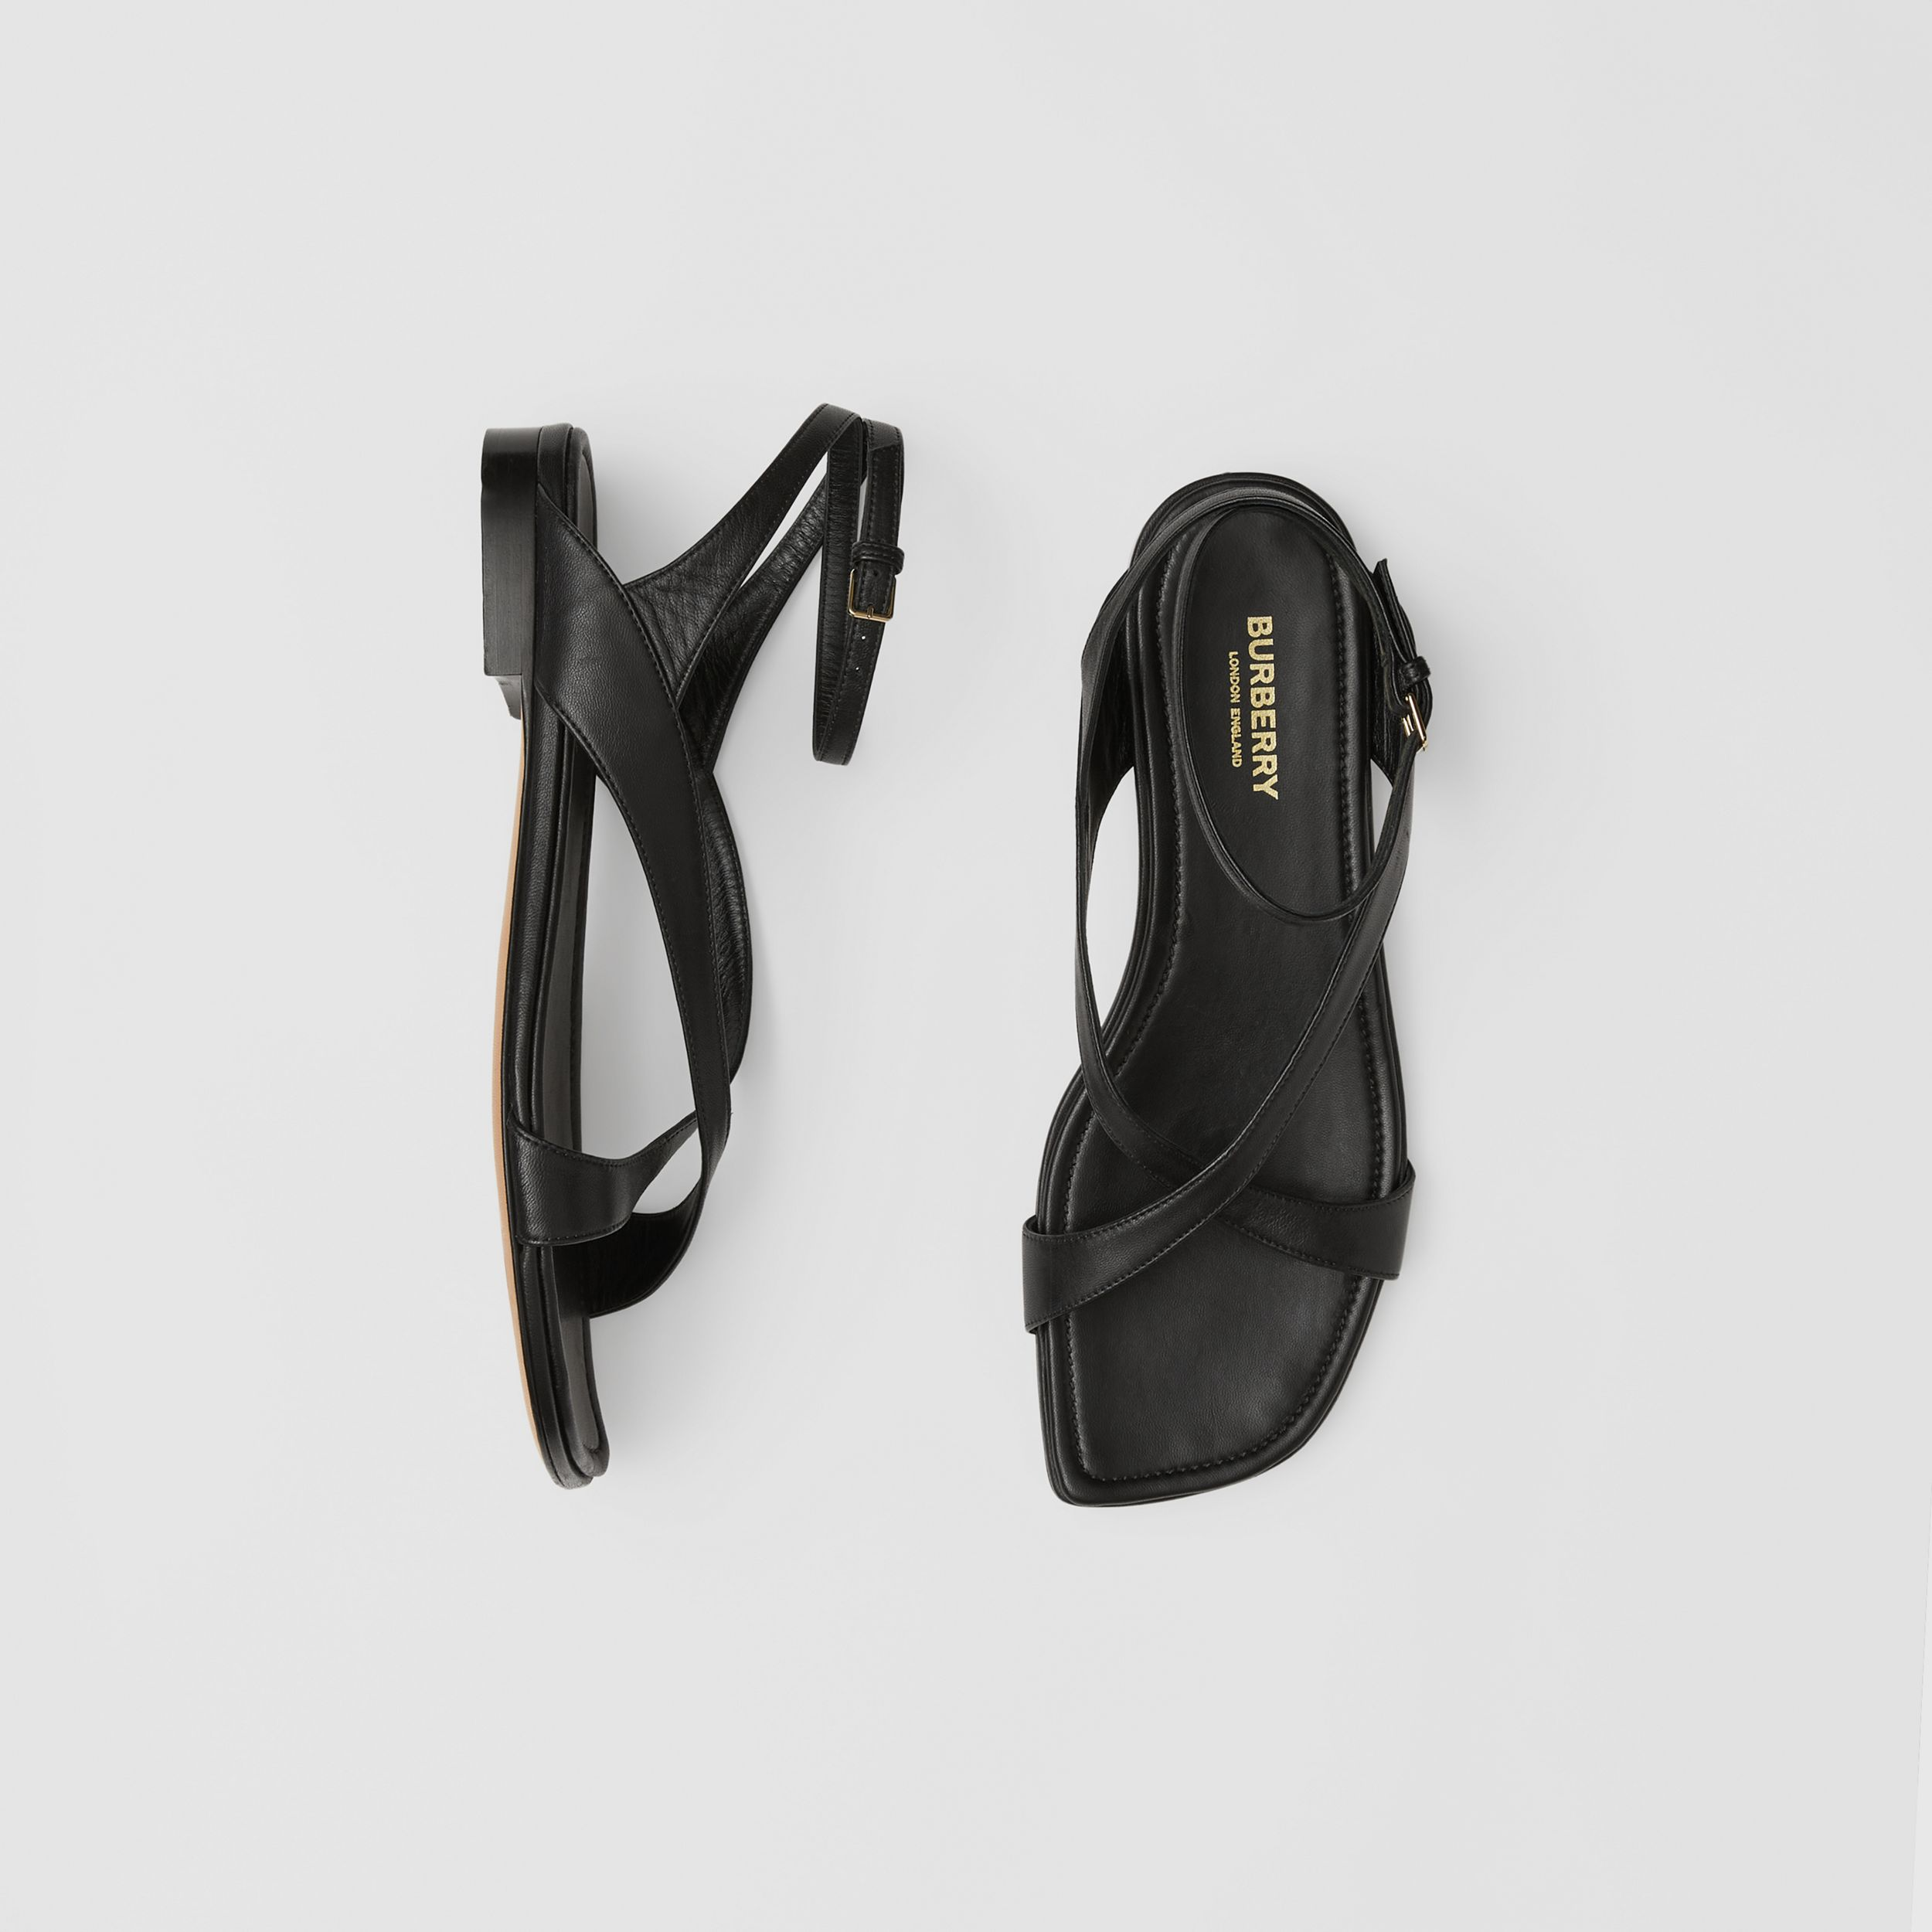 Lambskin Wraparound Sandals in Black - Women | Burberry - 1